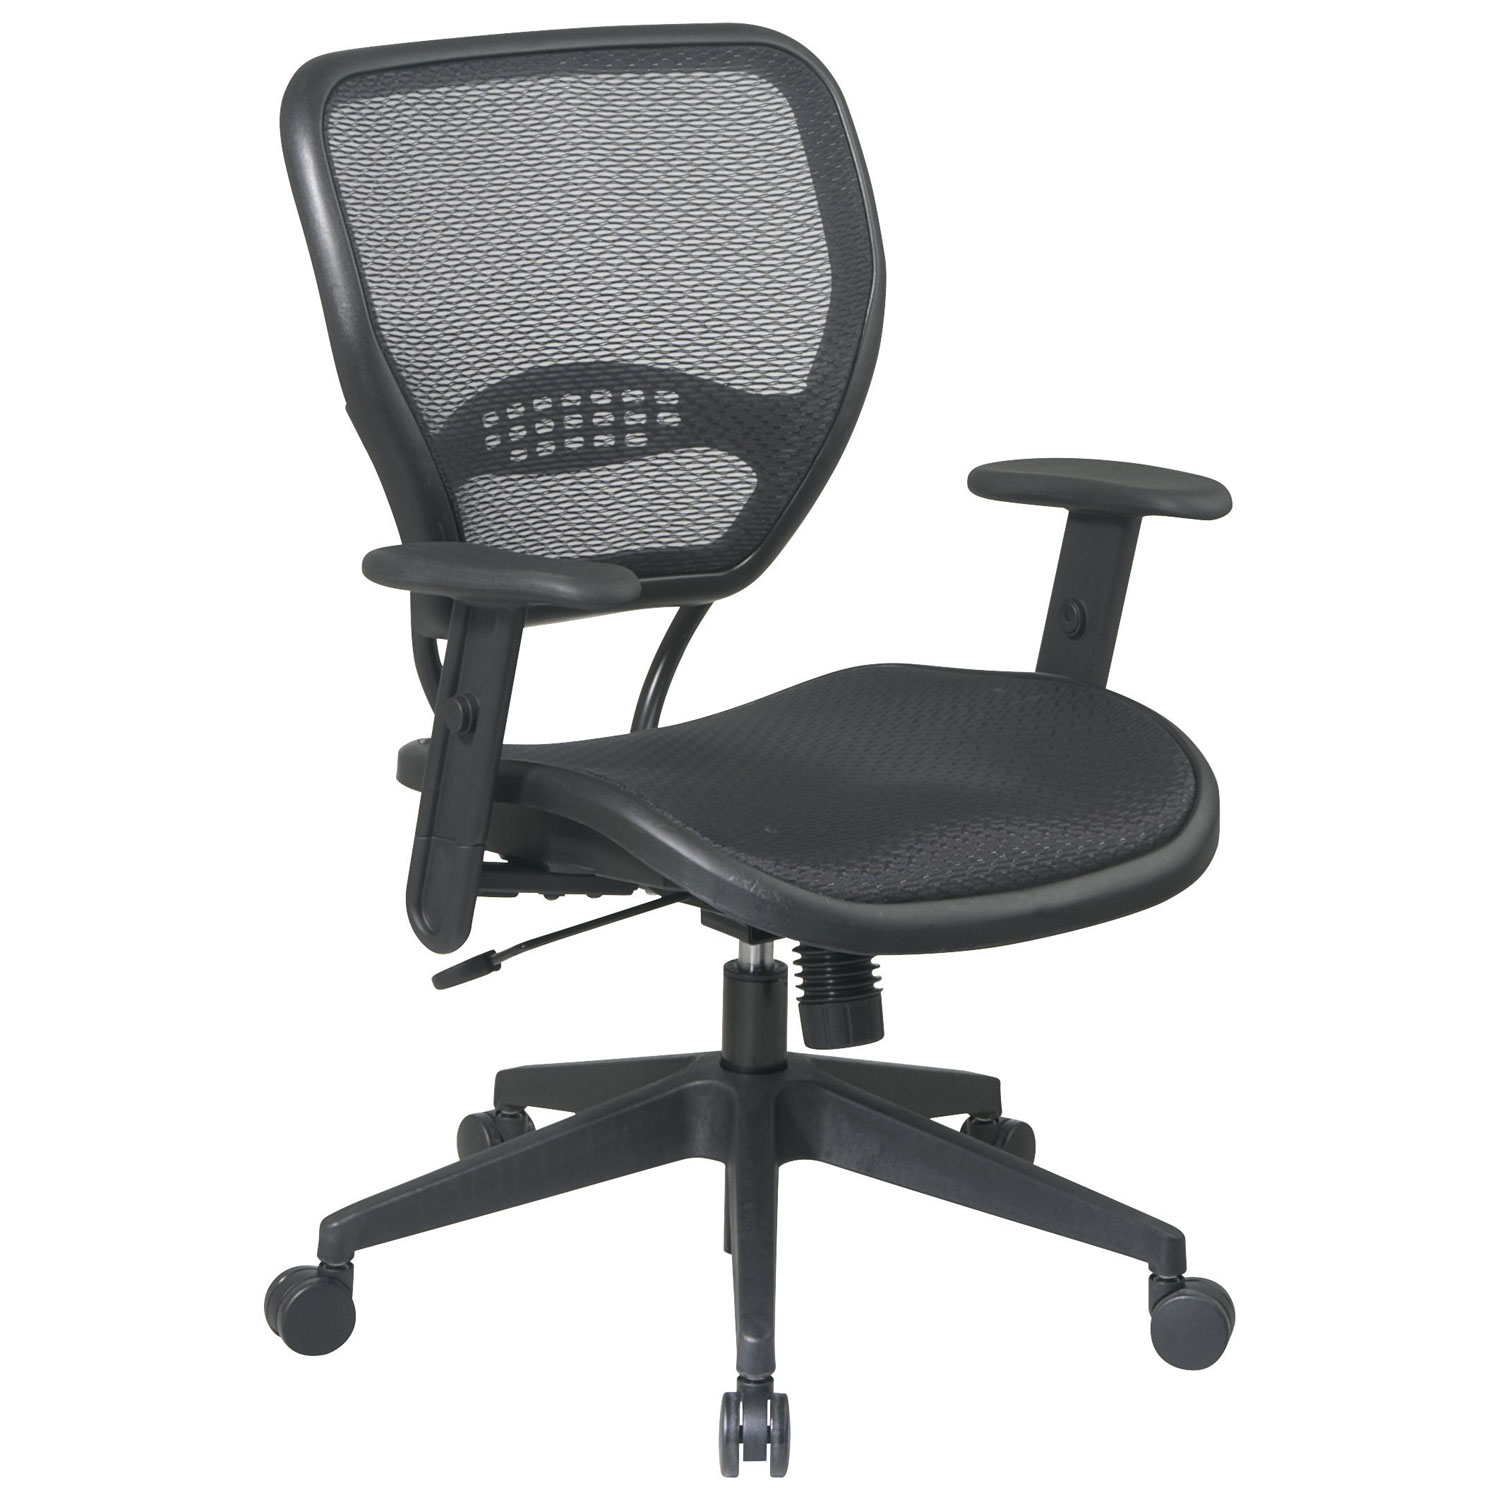 Space Seating AirGrid fice Chair Black fice Chairs Best